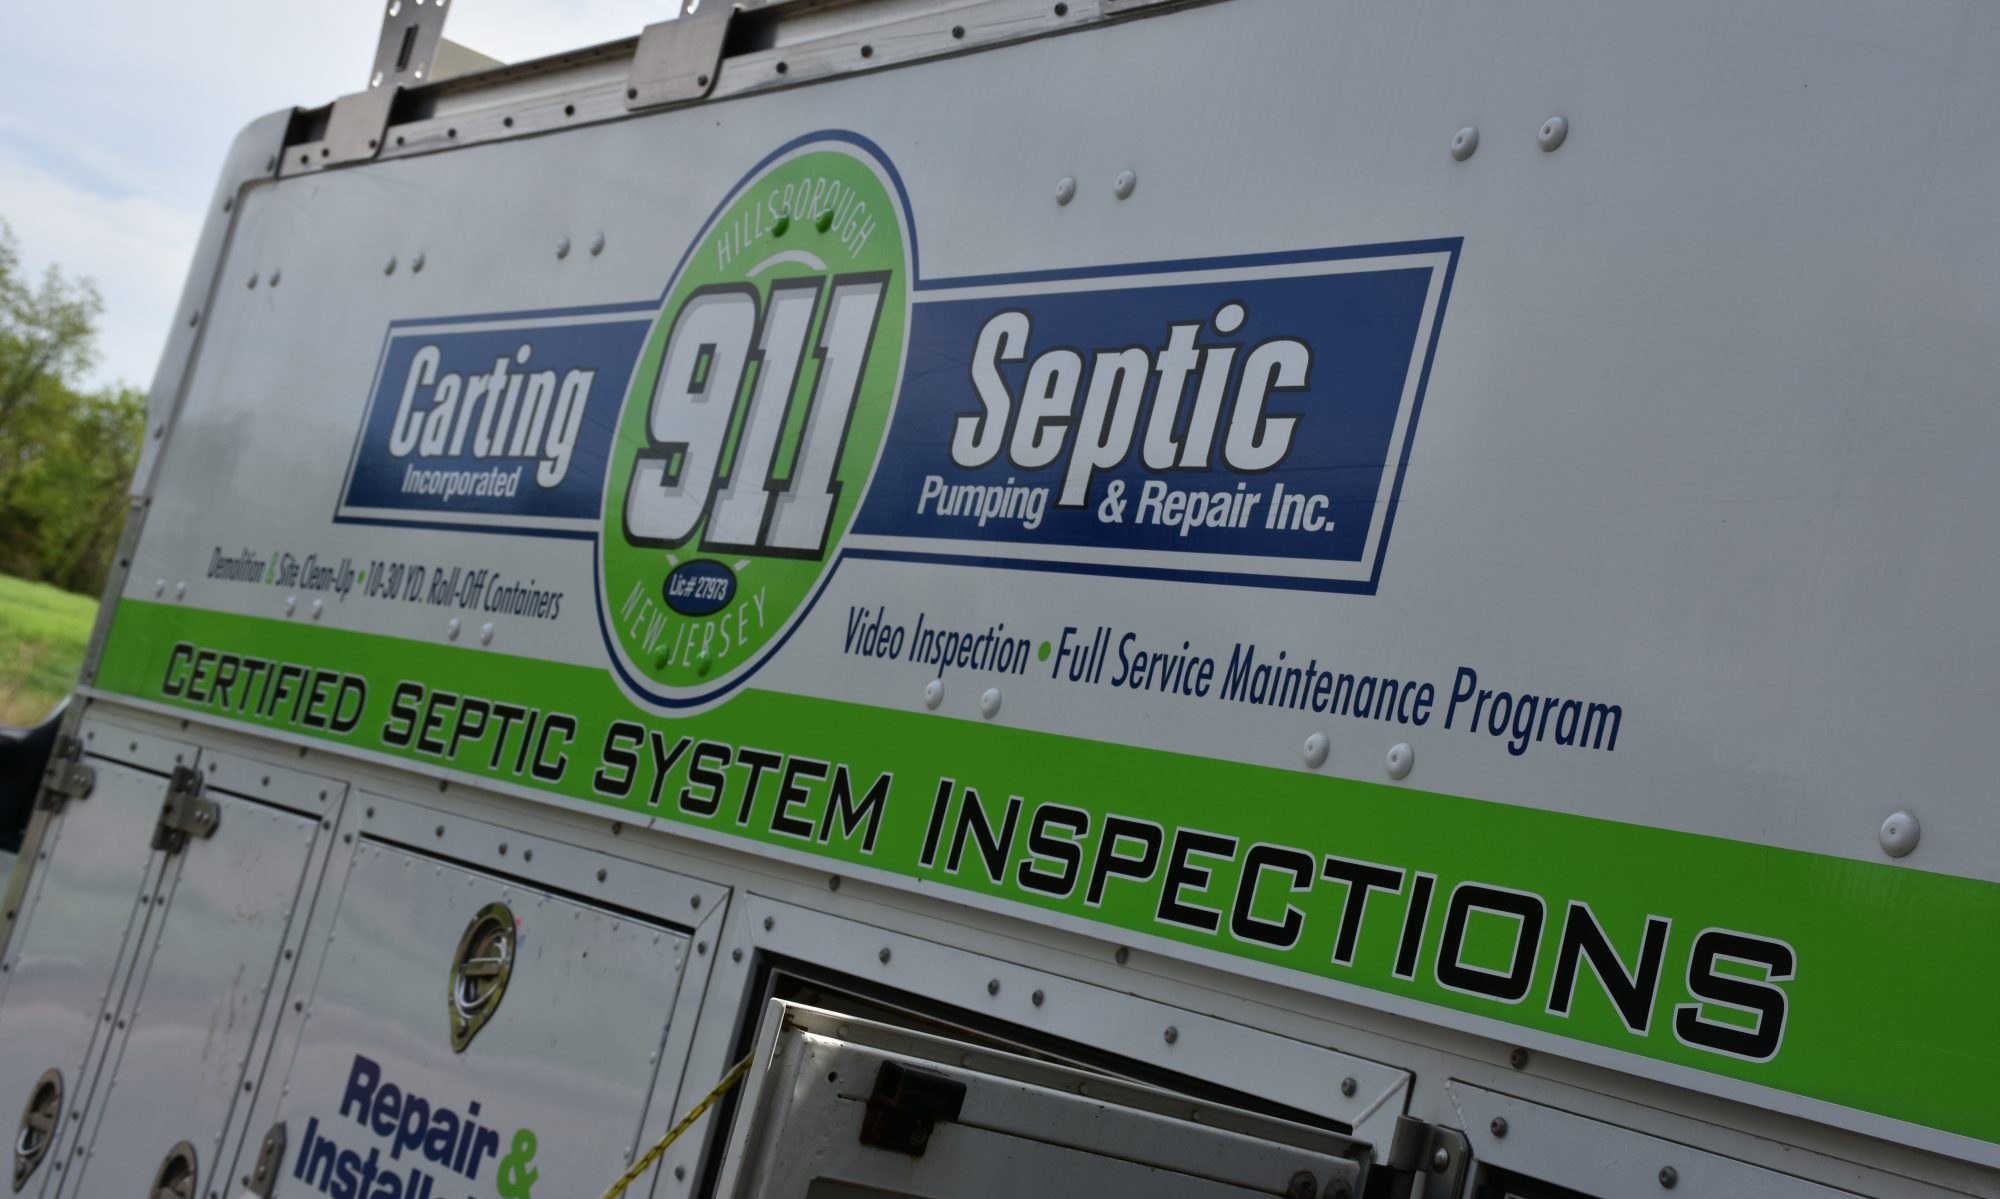 911 Septic Pumping & Carting